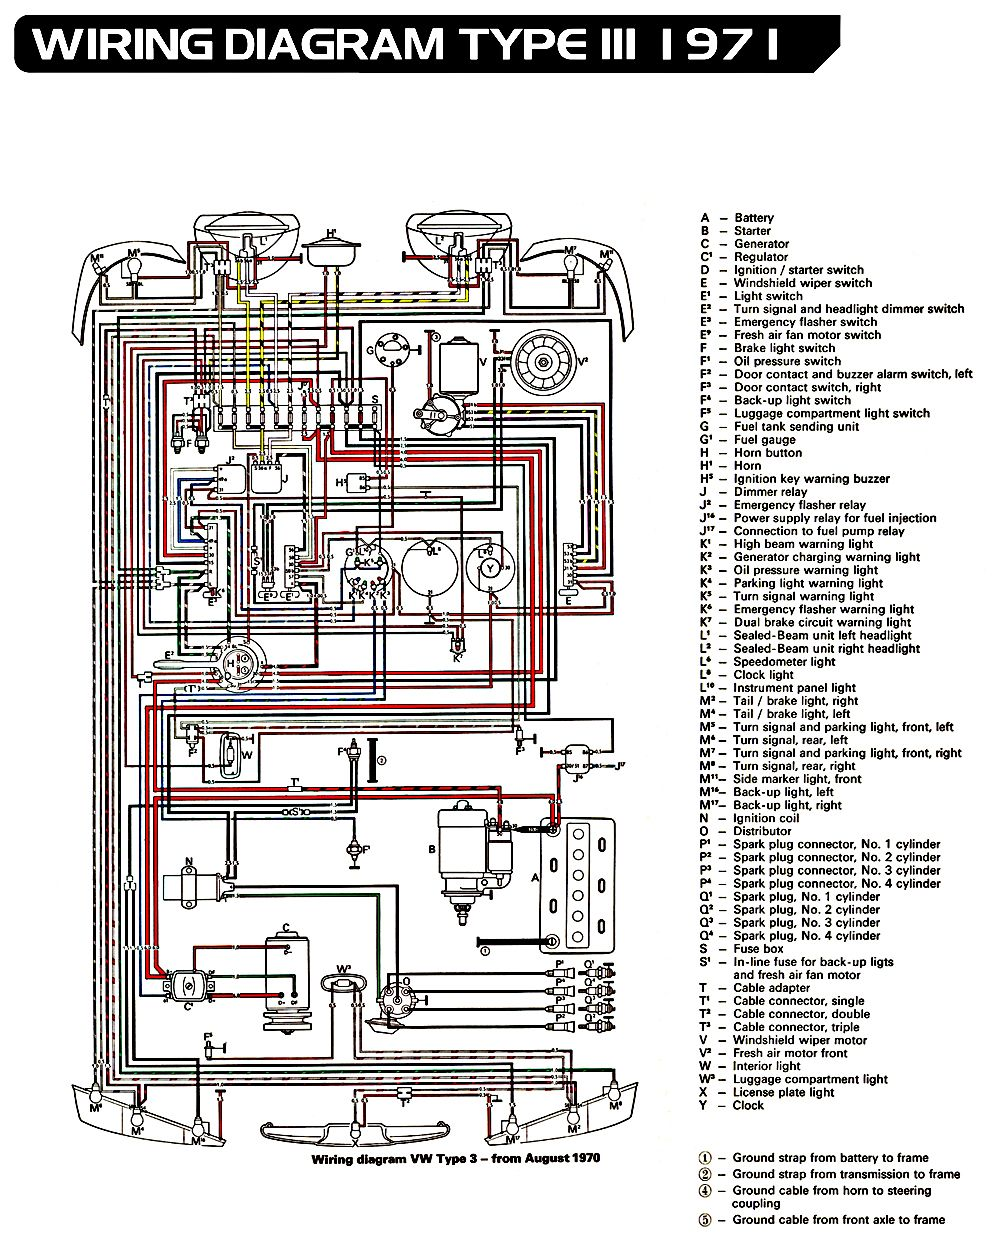 hight resolution of 1971 type 3 vw wiring diagram so simple compared to a modern ecu wiring diagram 1970 vw squareback